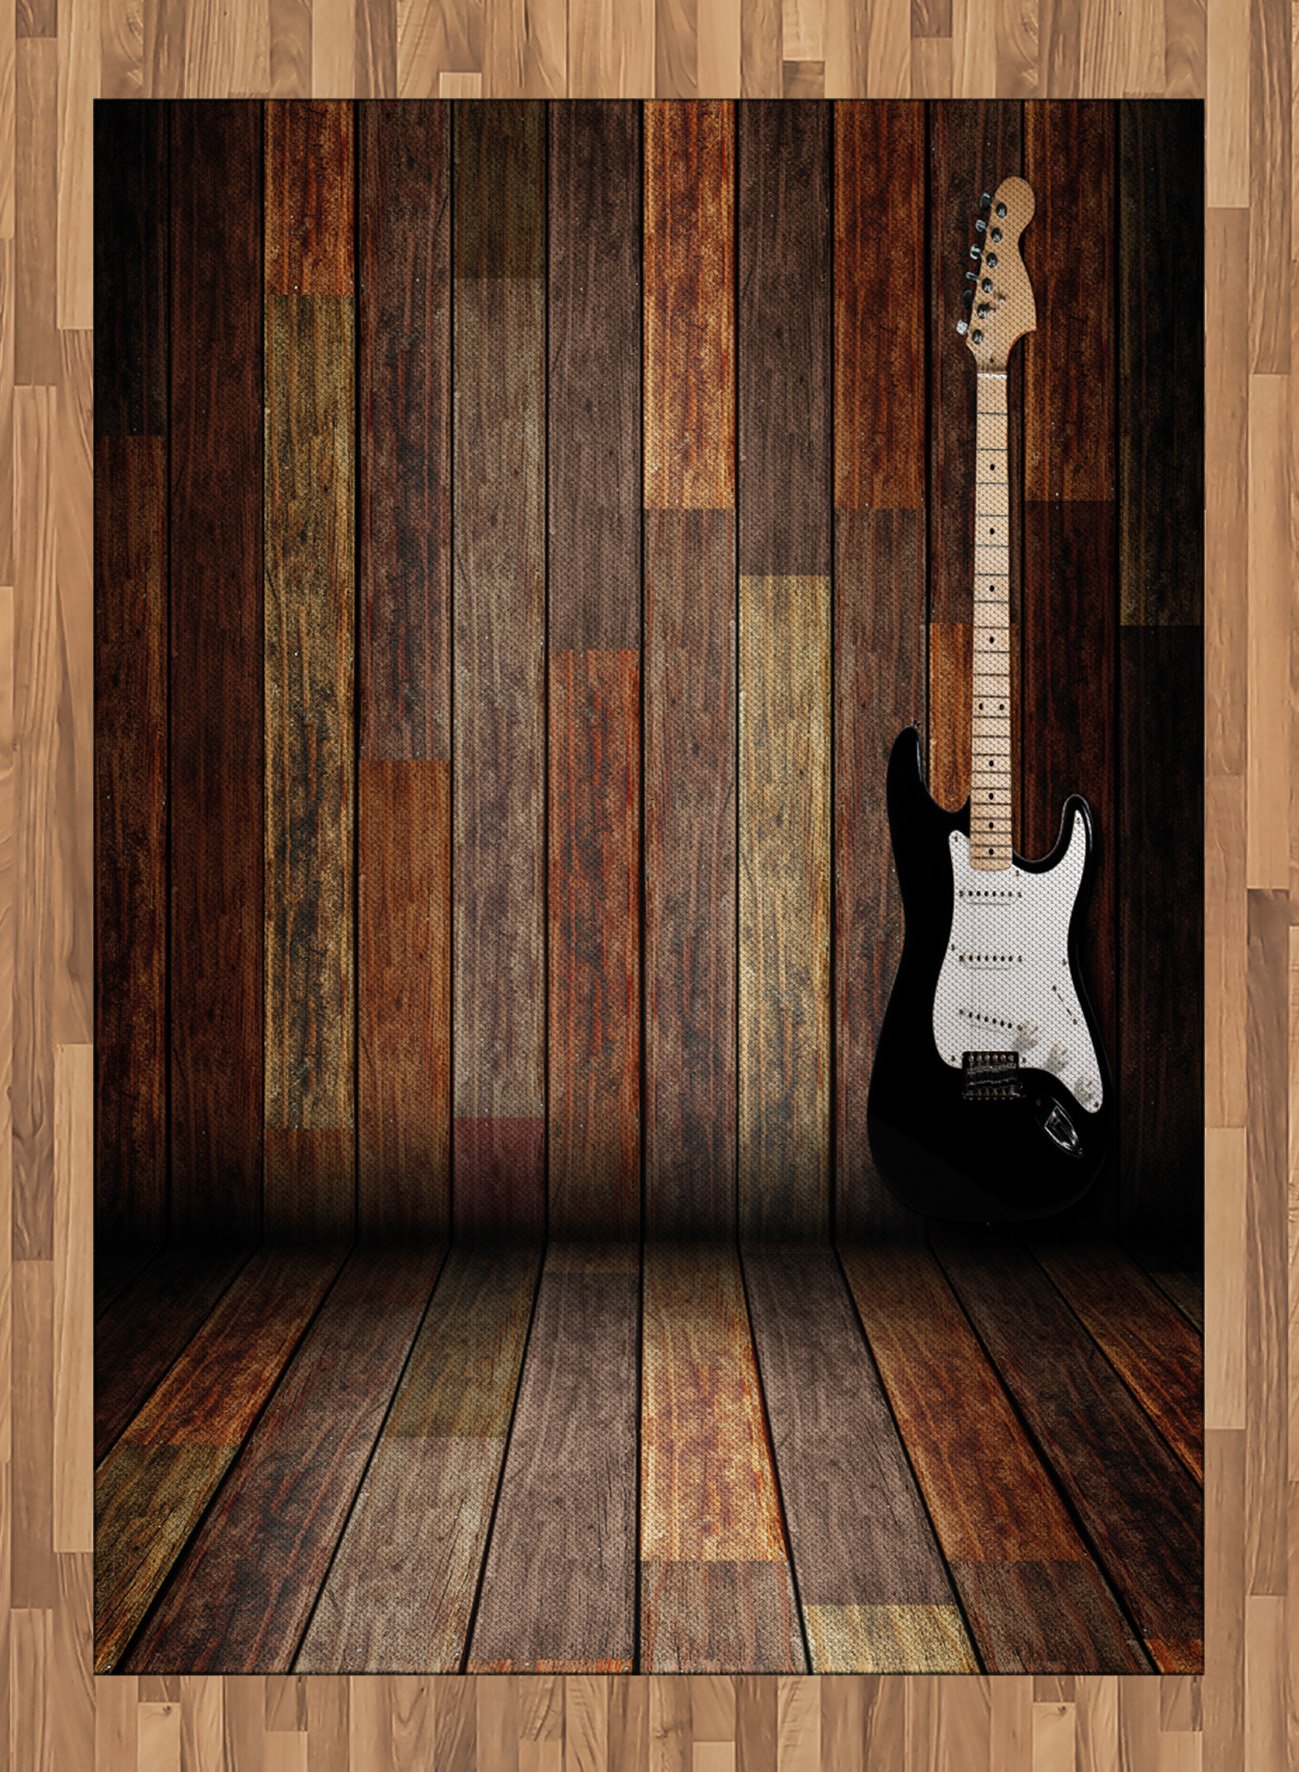 Popstar Party Area Rug by Ambesonne, Electric Guitar in the Wooden Room Country House Interior Music Theme, Flat Woven Accent Rug for Living Room Bedroom Dining Room, 5.2 x 7.5 FT, Brown Black White